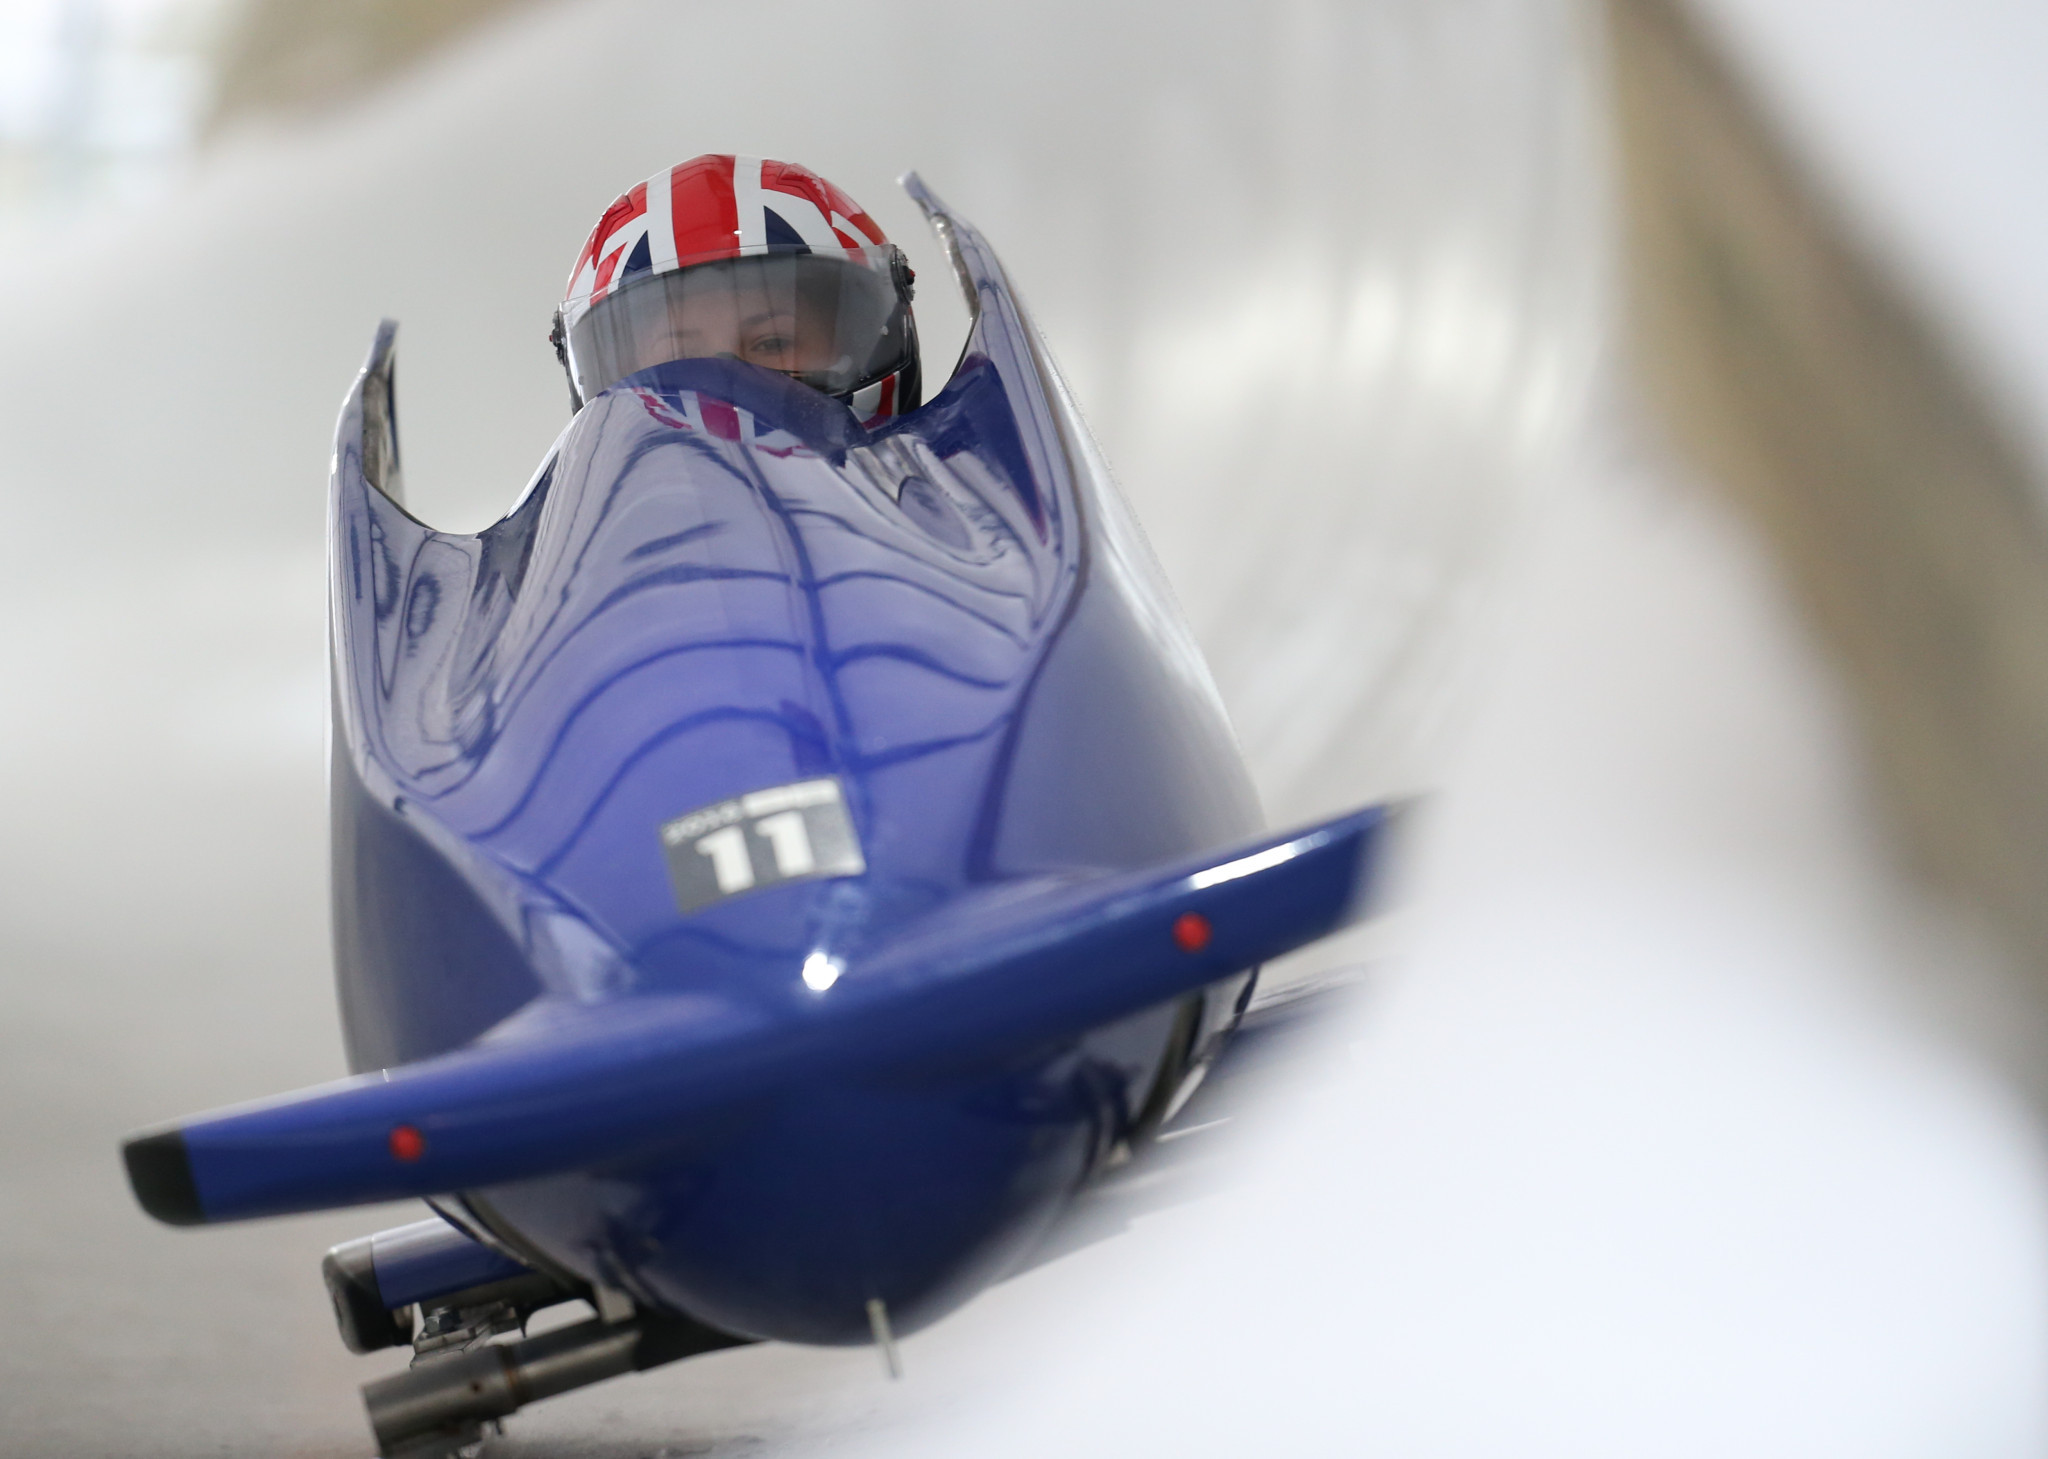 Park City ready to host latest IBSF women's monobob event